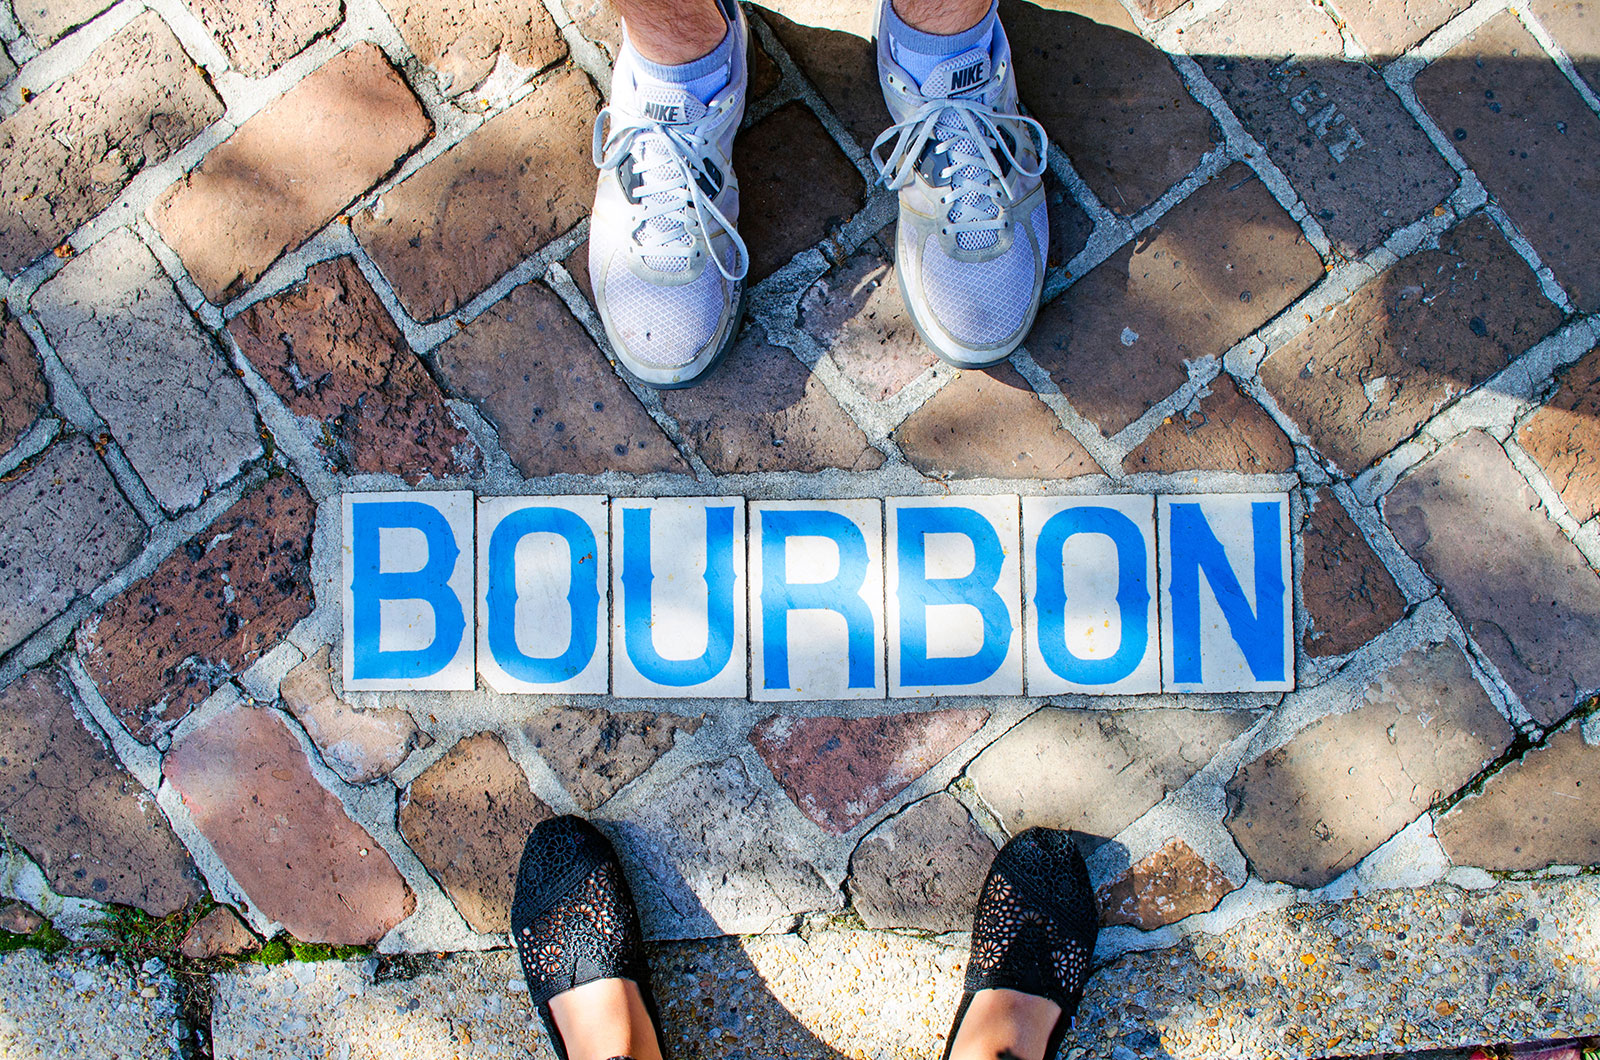 The street sign on Bourbon Street in the French Quarter of New Orleans Louisiana where we stayed during our gap year